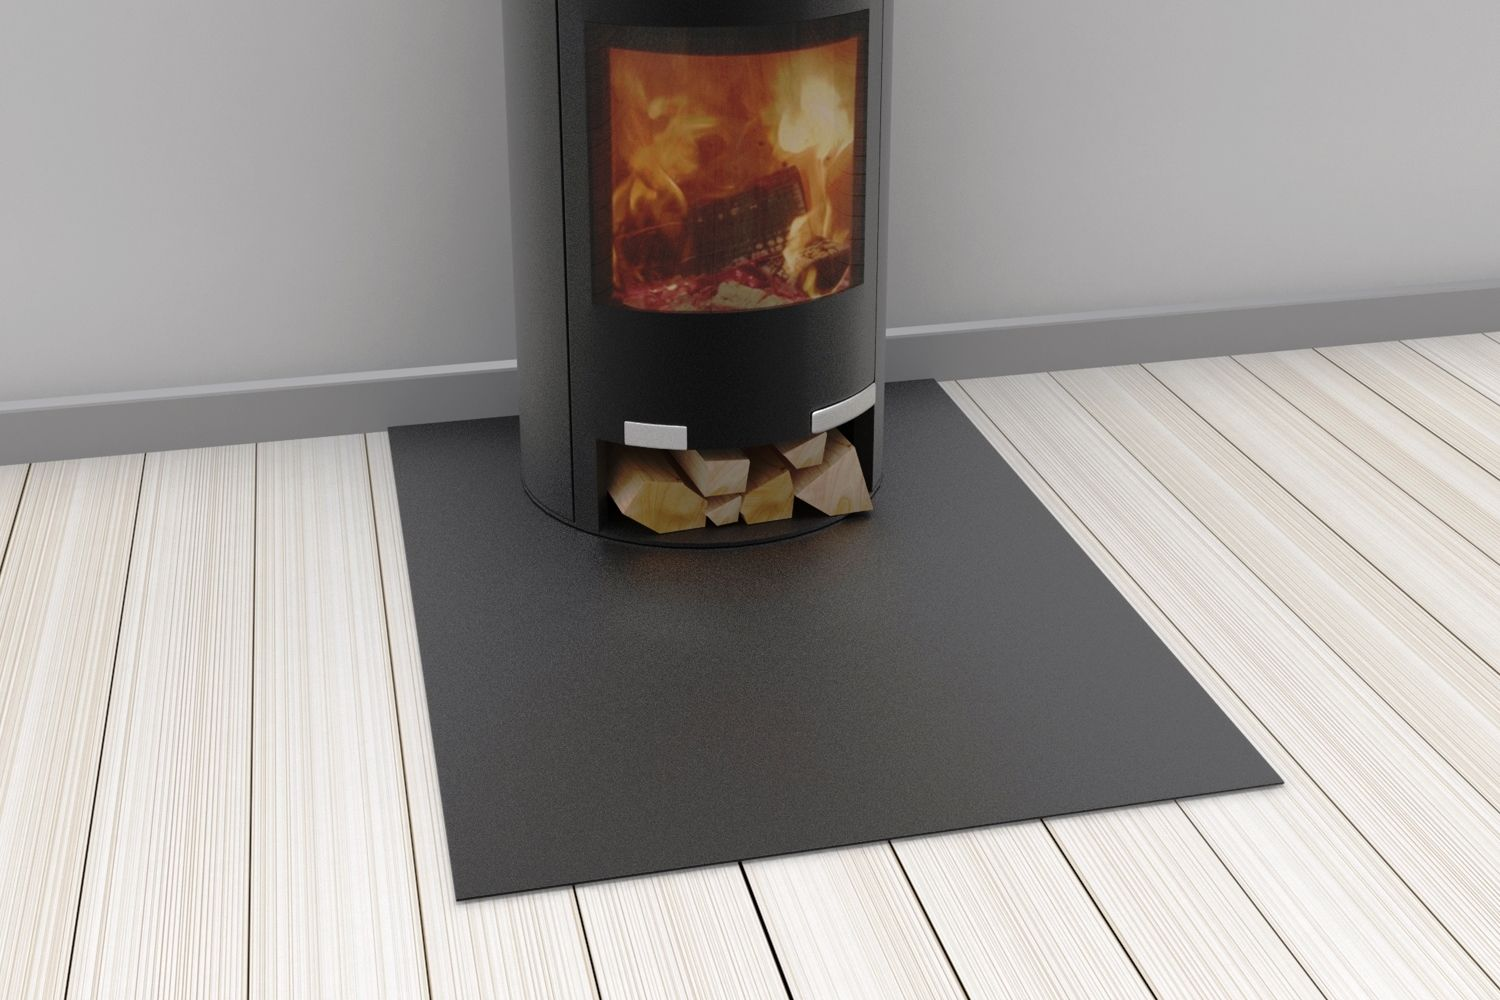 Hearth plates for wood-burning stoves